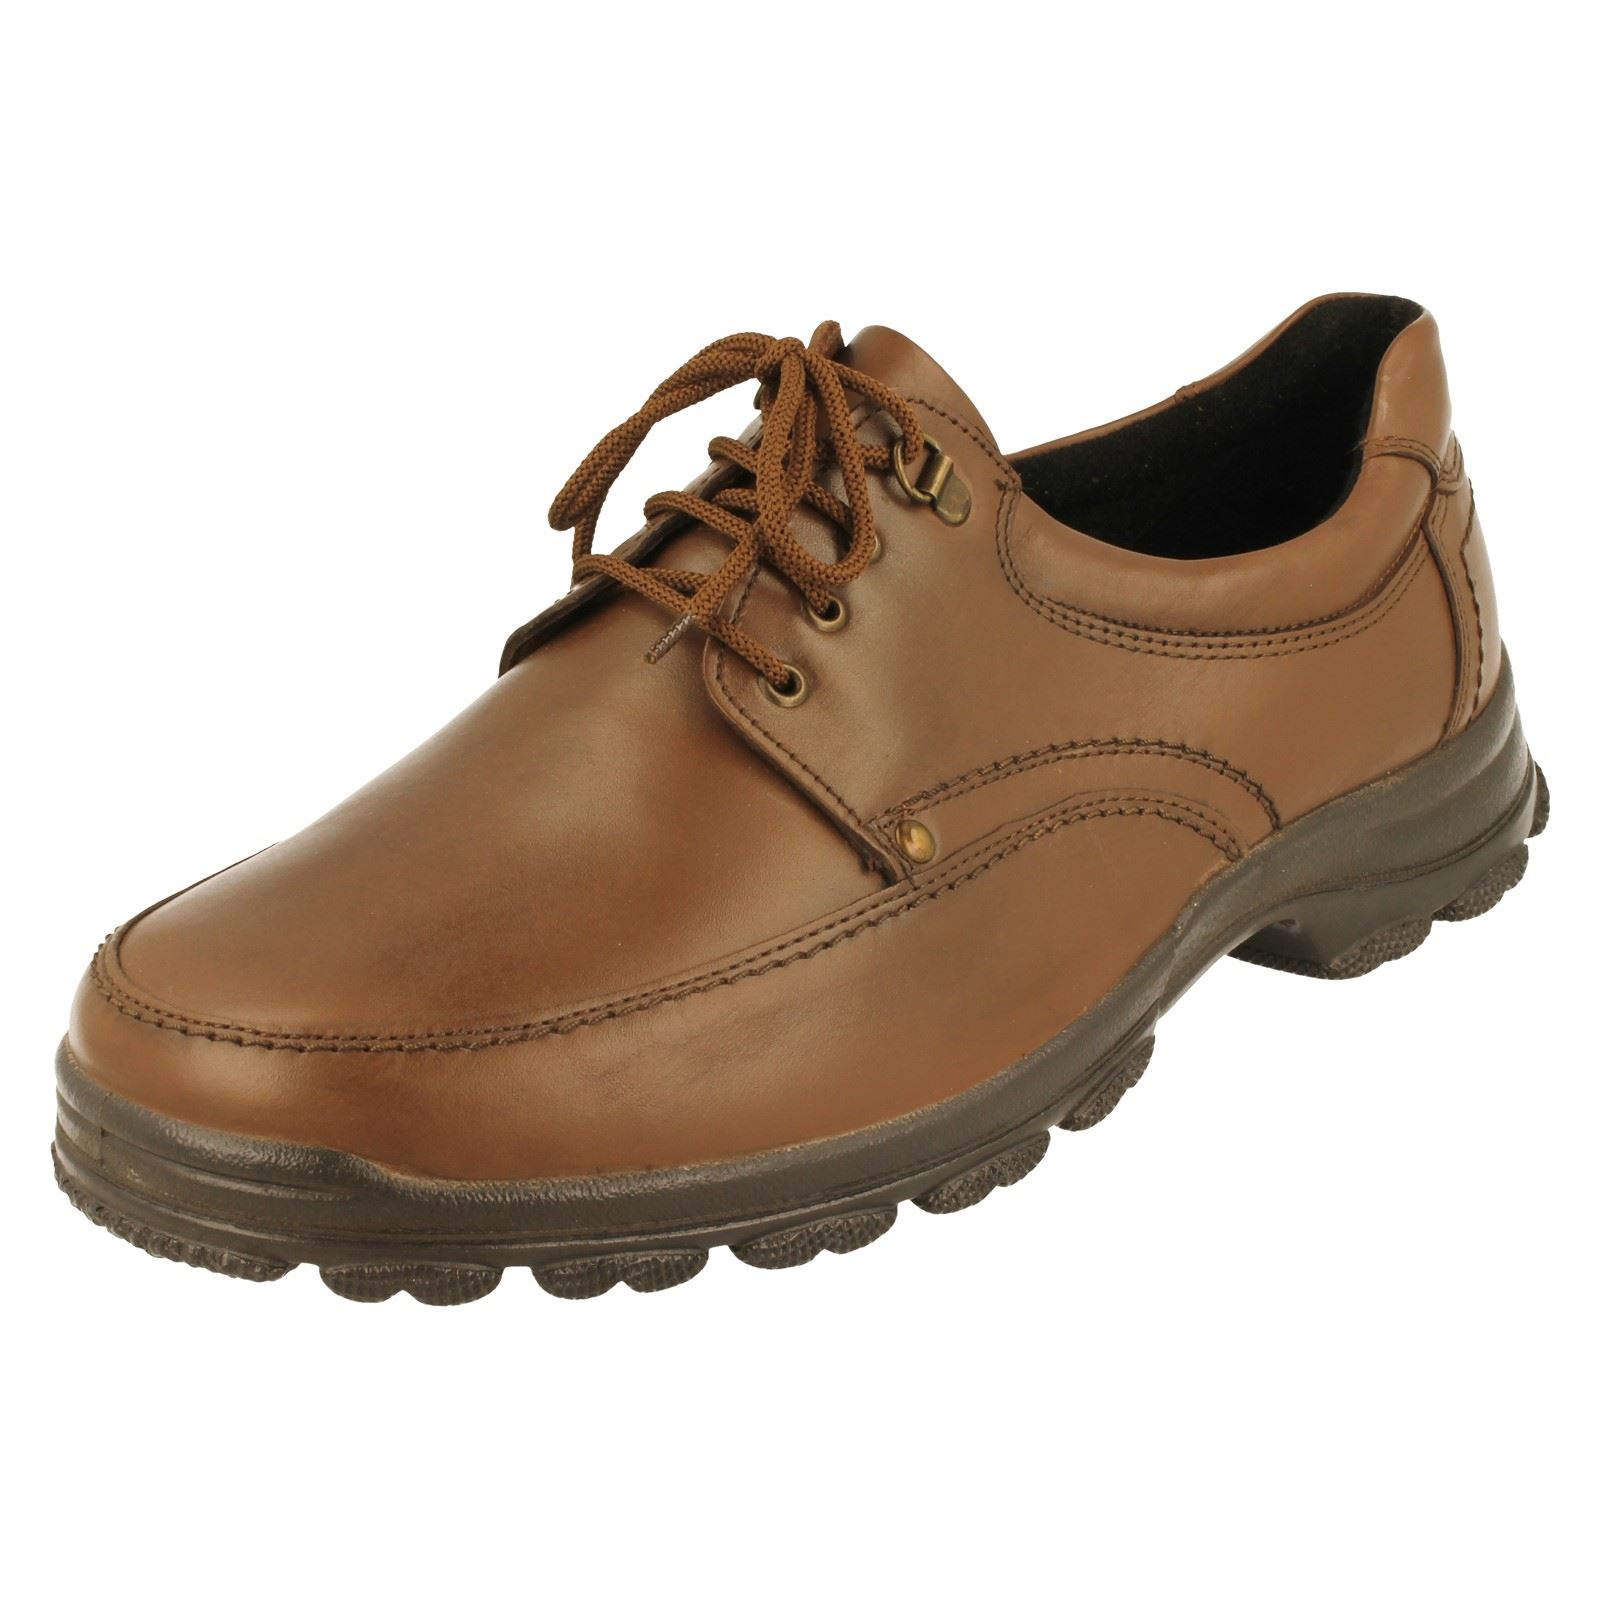 Mens DB Shoes Wide Fitting Lace Up The Style Hebden-W Hebden-W Hebden-W 466d59